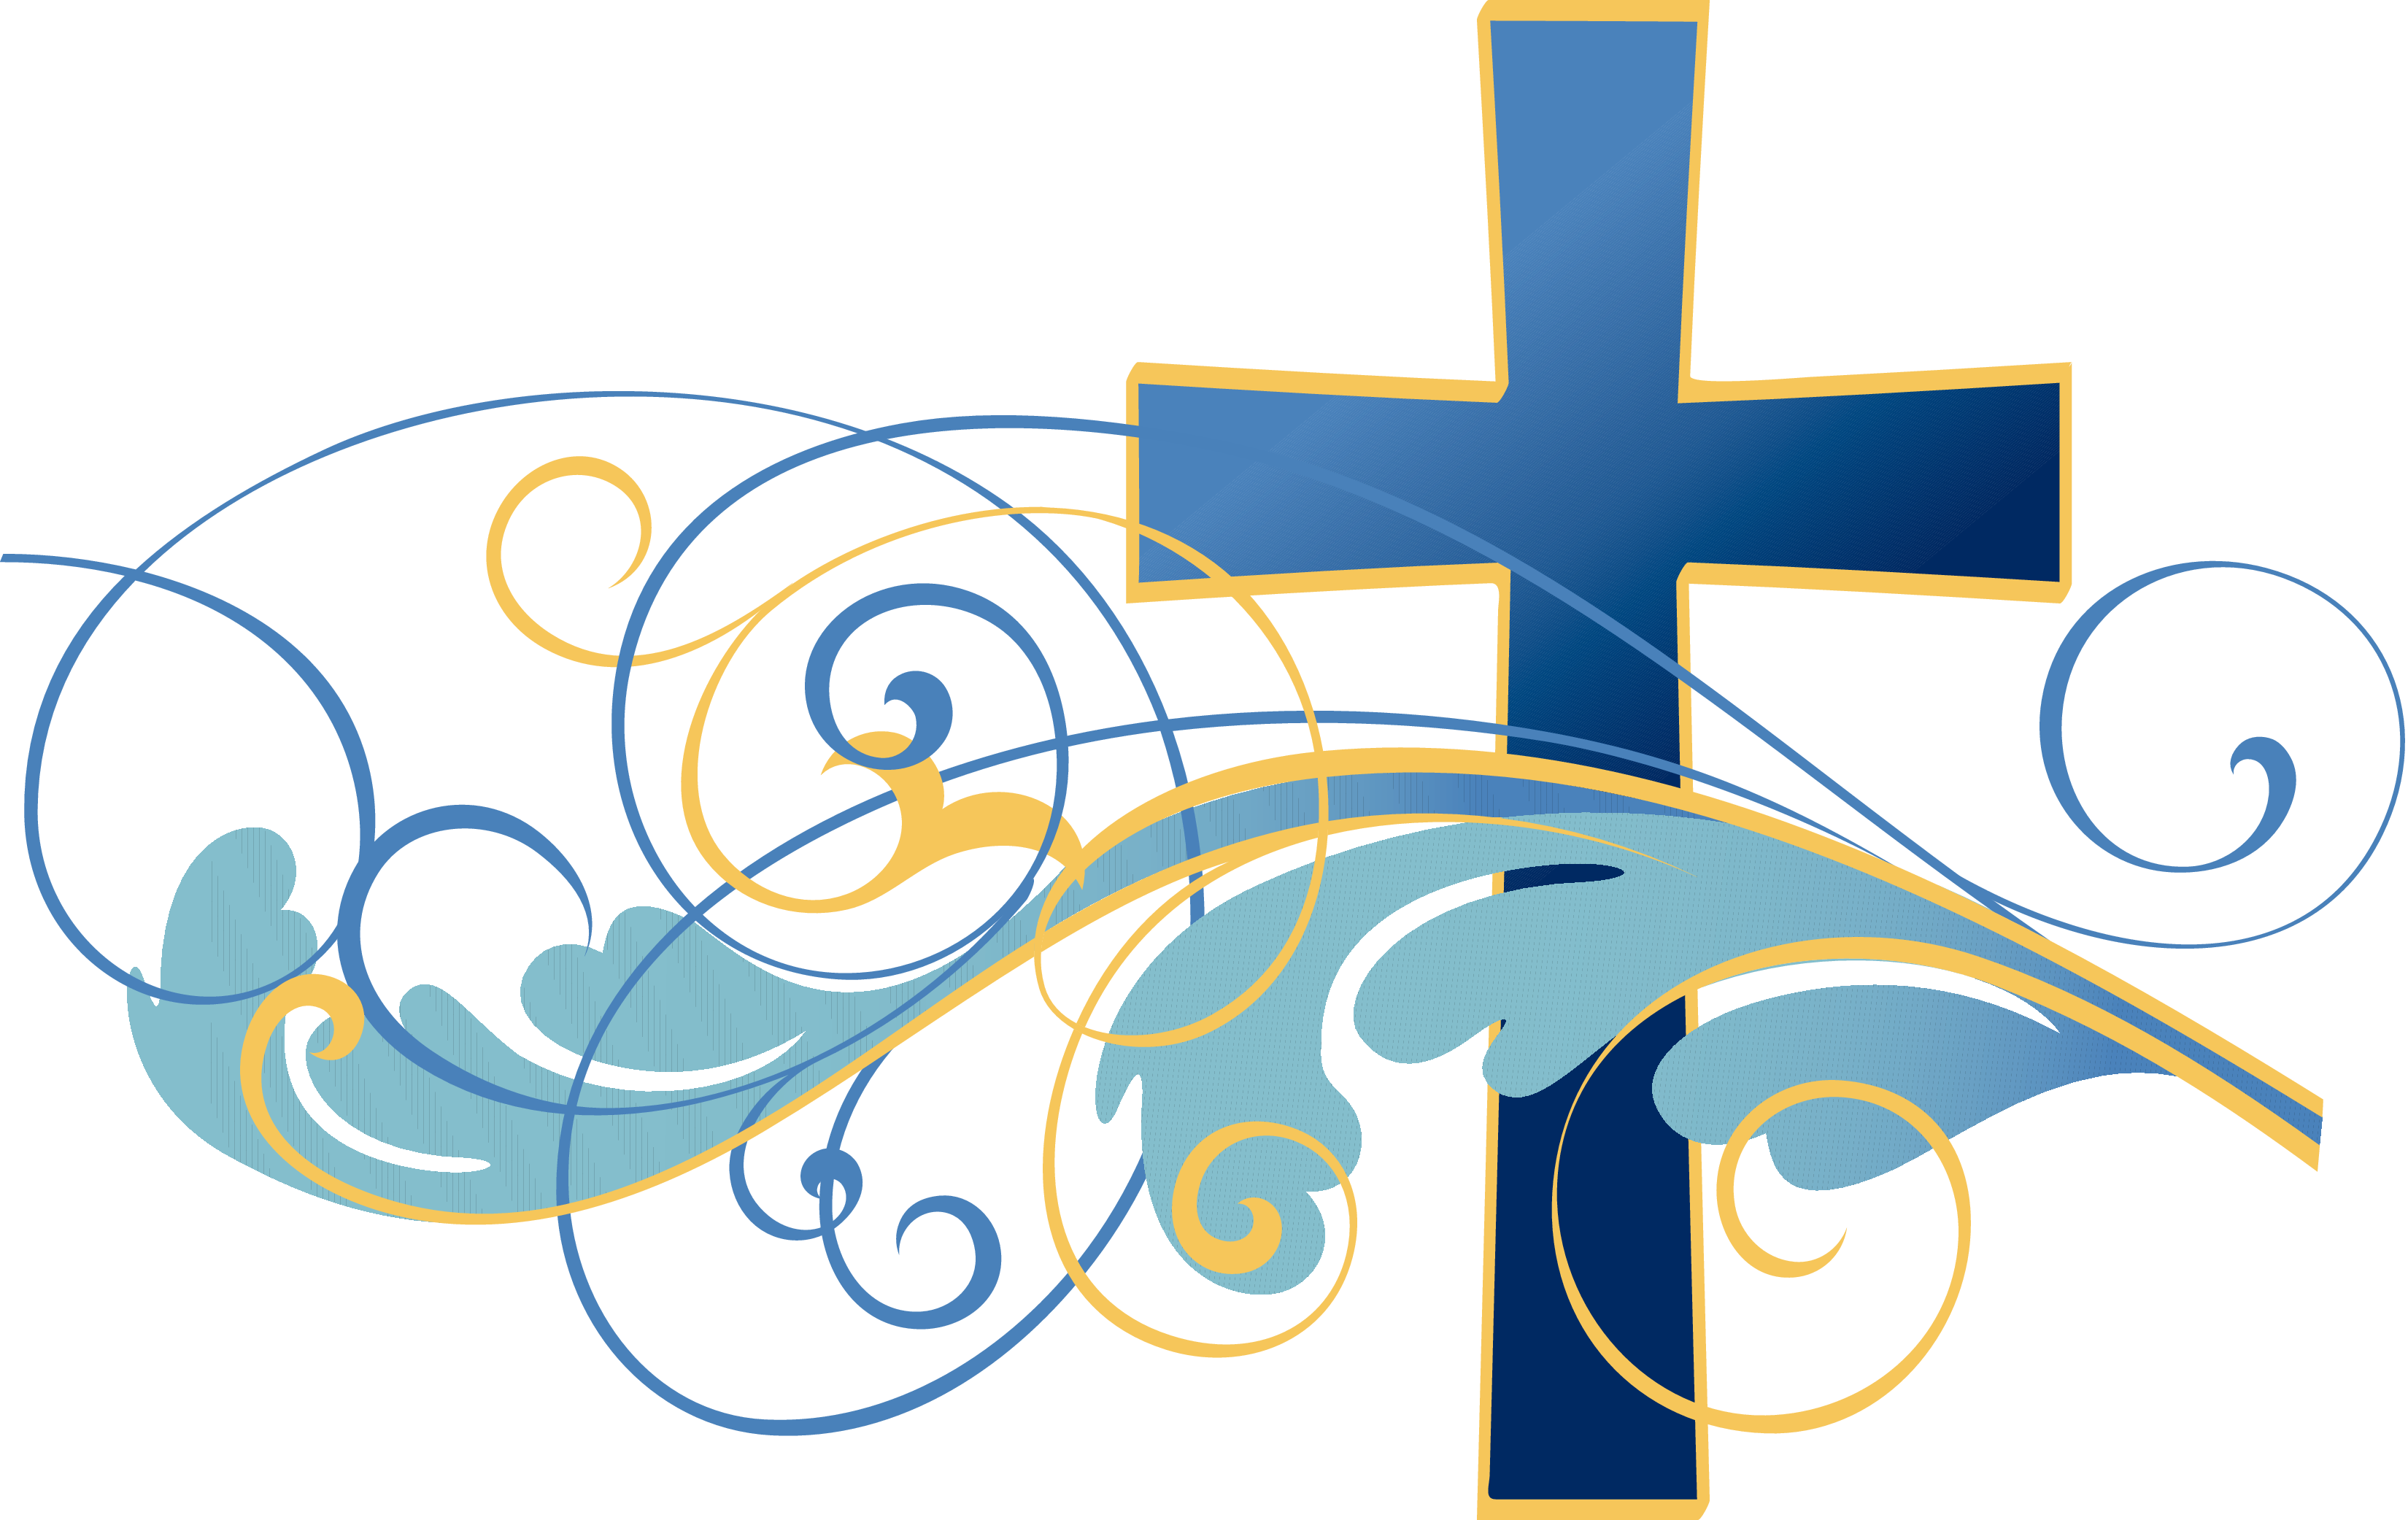 Free Church Council Cliparts, Download Free Clip Art, Free.